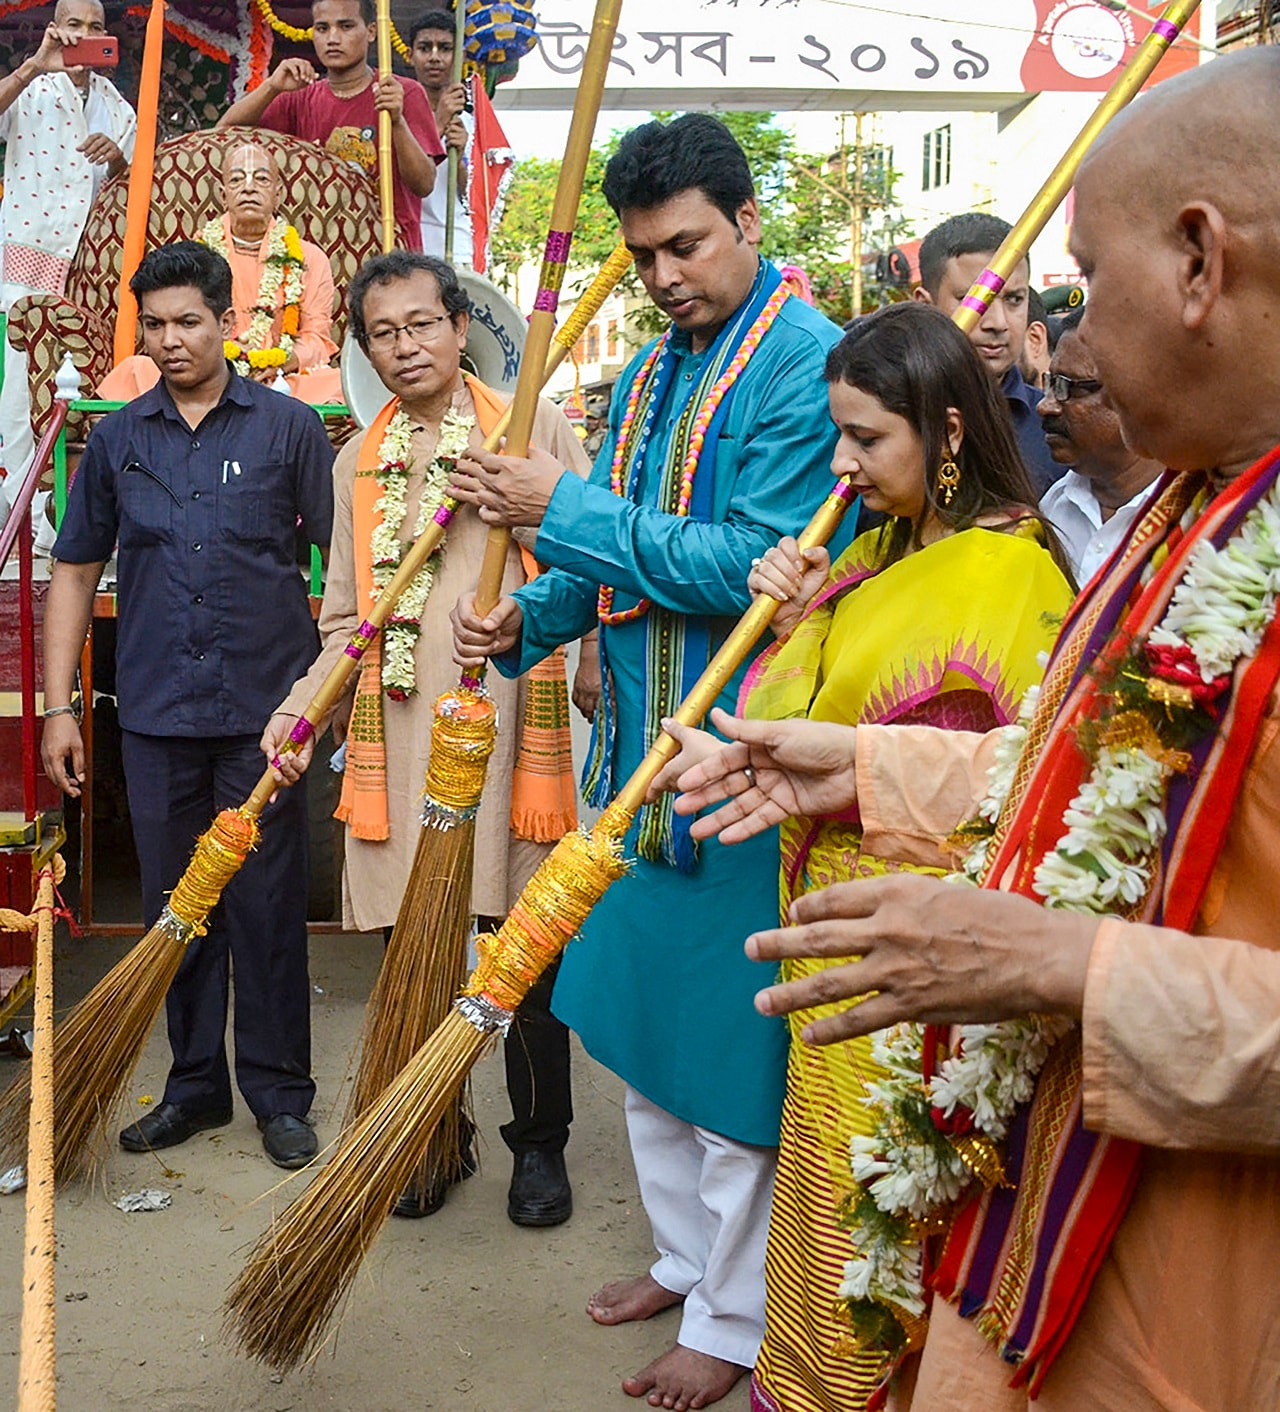 Tripura Chief Minister Biplab Deb and his wife Niti Deb inaugurate Lord Jagannath's Rath Yatra from ISKCON temple, in Agartala, Thursday, July 4, 2019. (PTI Photo) (PTI7_4_2019_000234B)